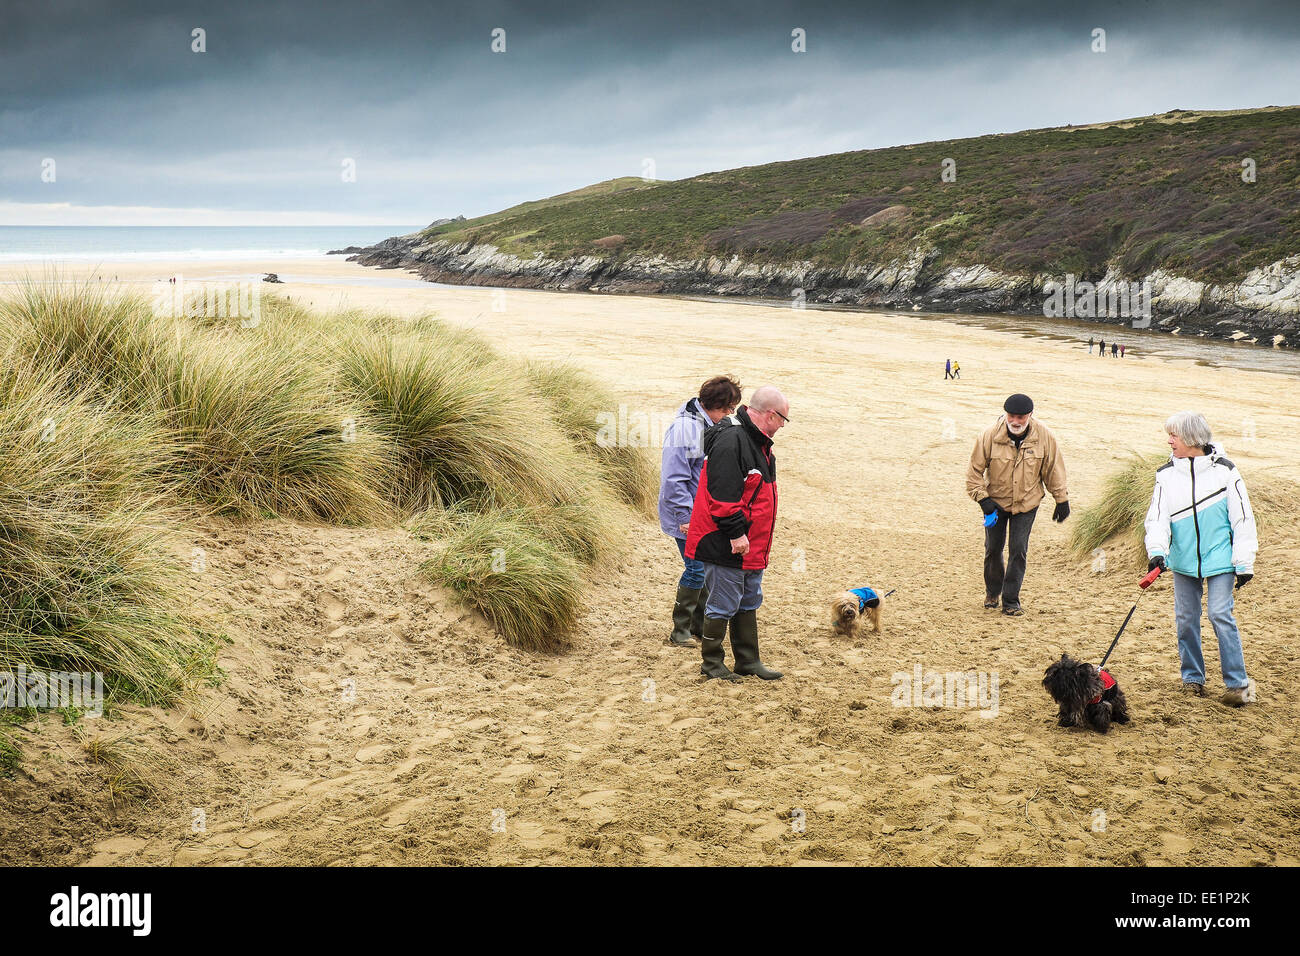 Dog walkers on Crantock Beach in Newquay, Cornwall. - Stock Image